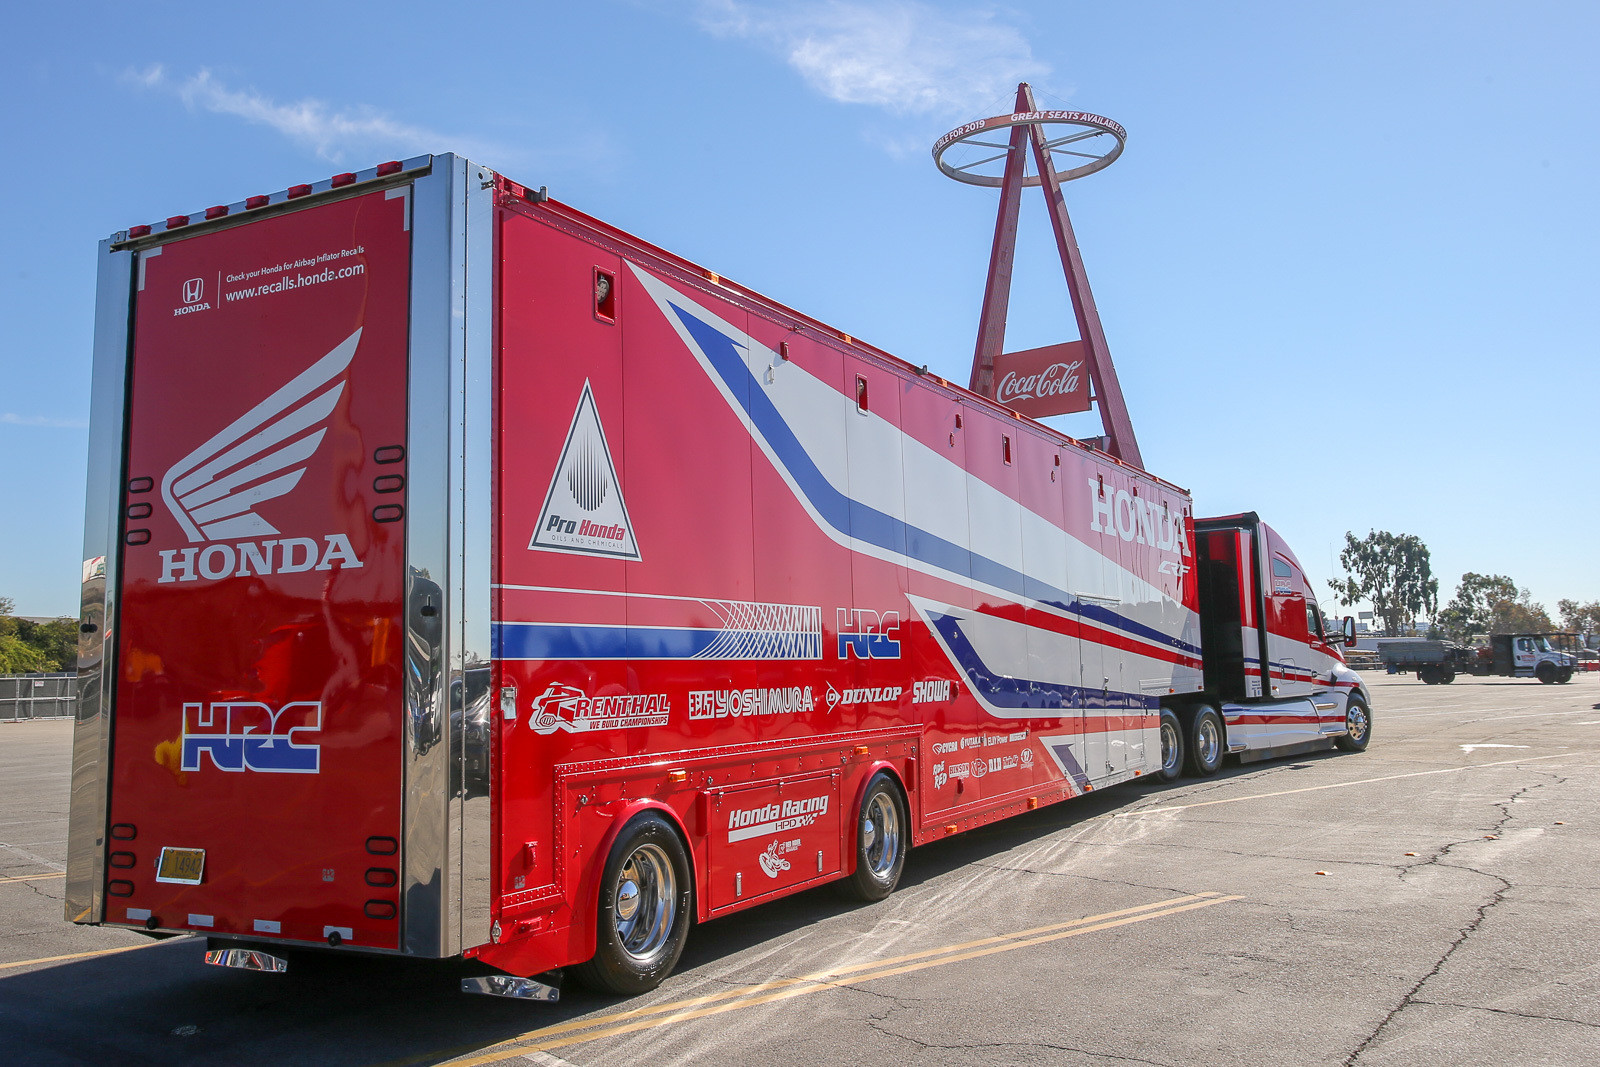 It's always our favorite time of year when the rigs start rolling into the pits at Angel Stadium. Let's see what else was going on early in the weekend at the Big A.